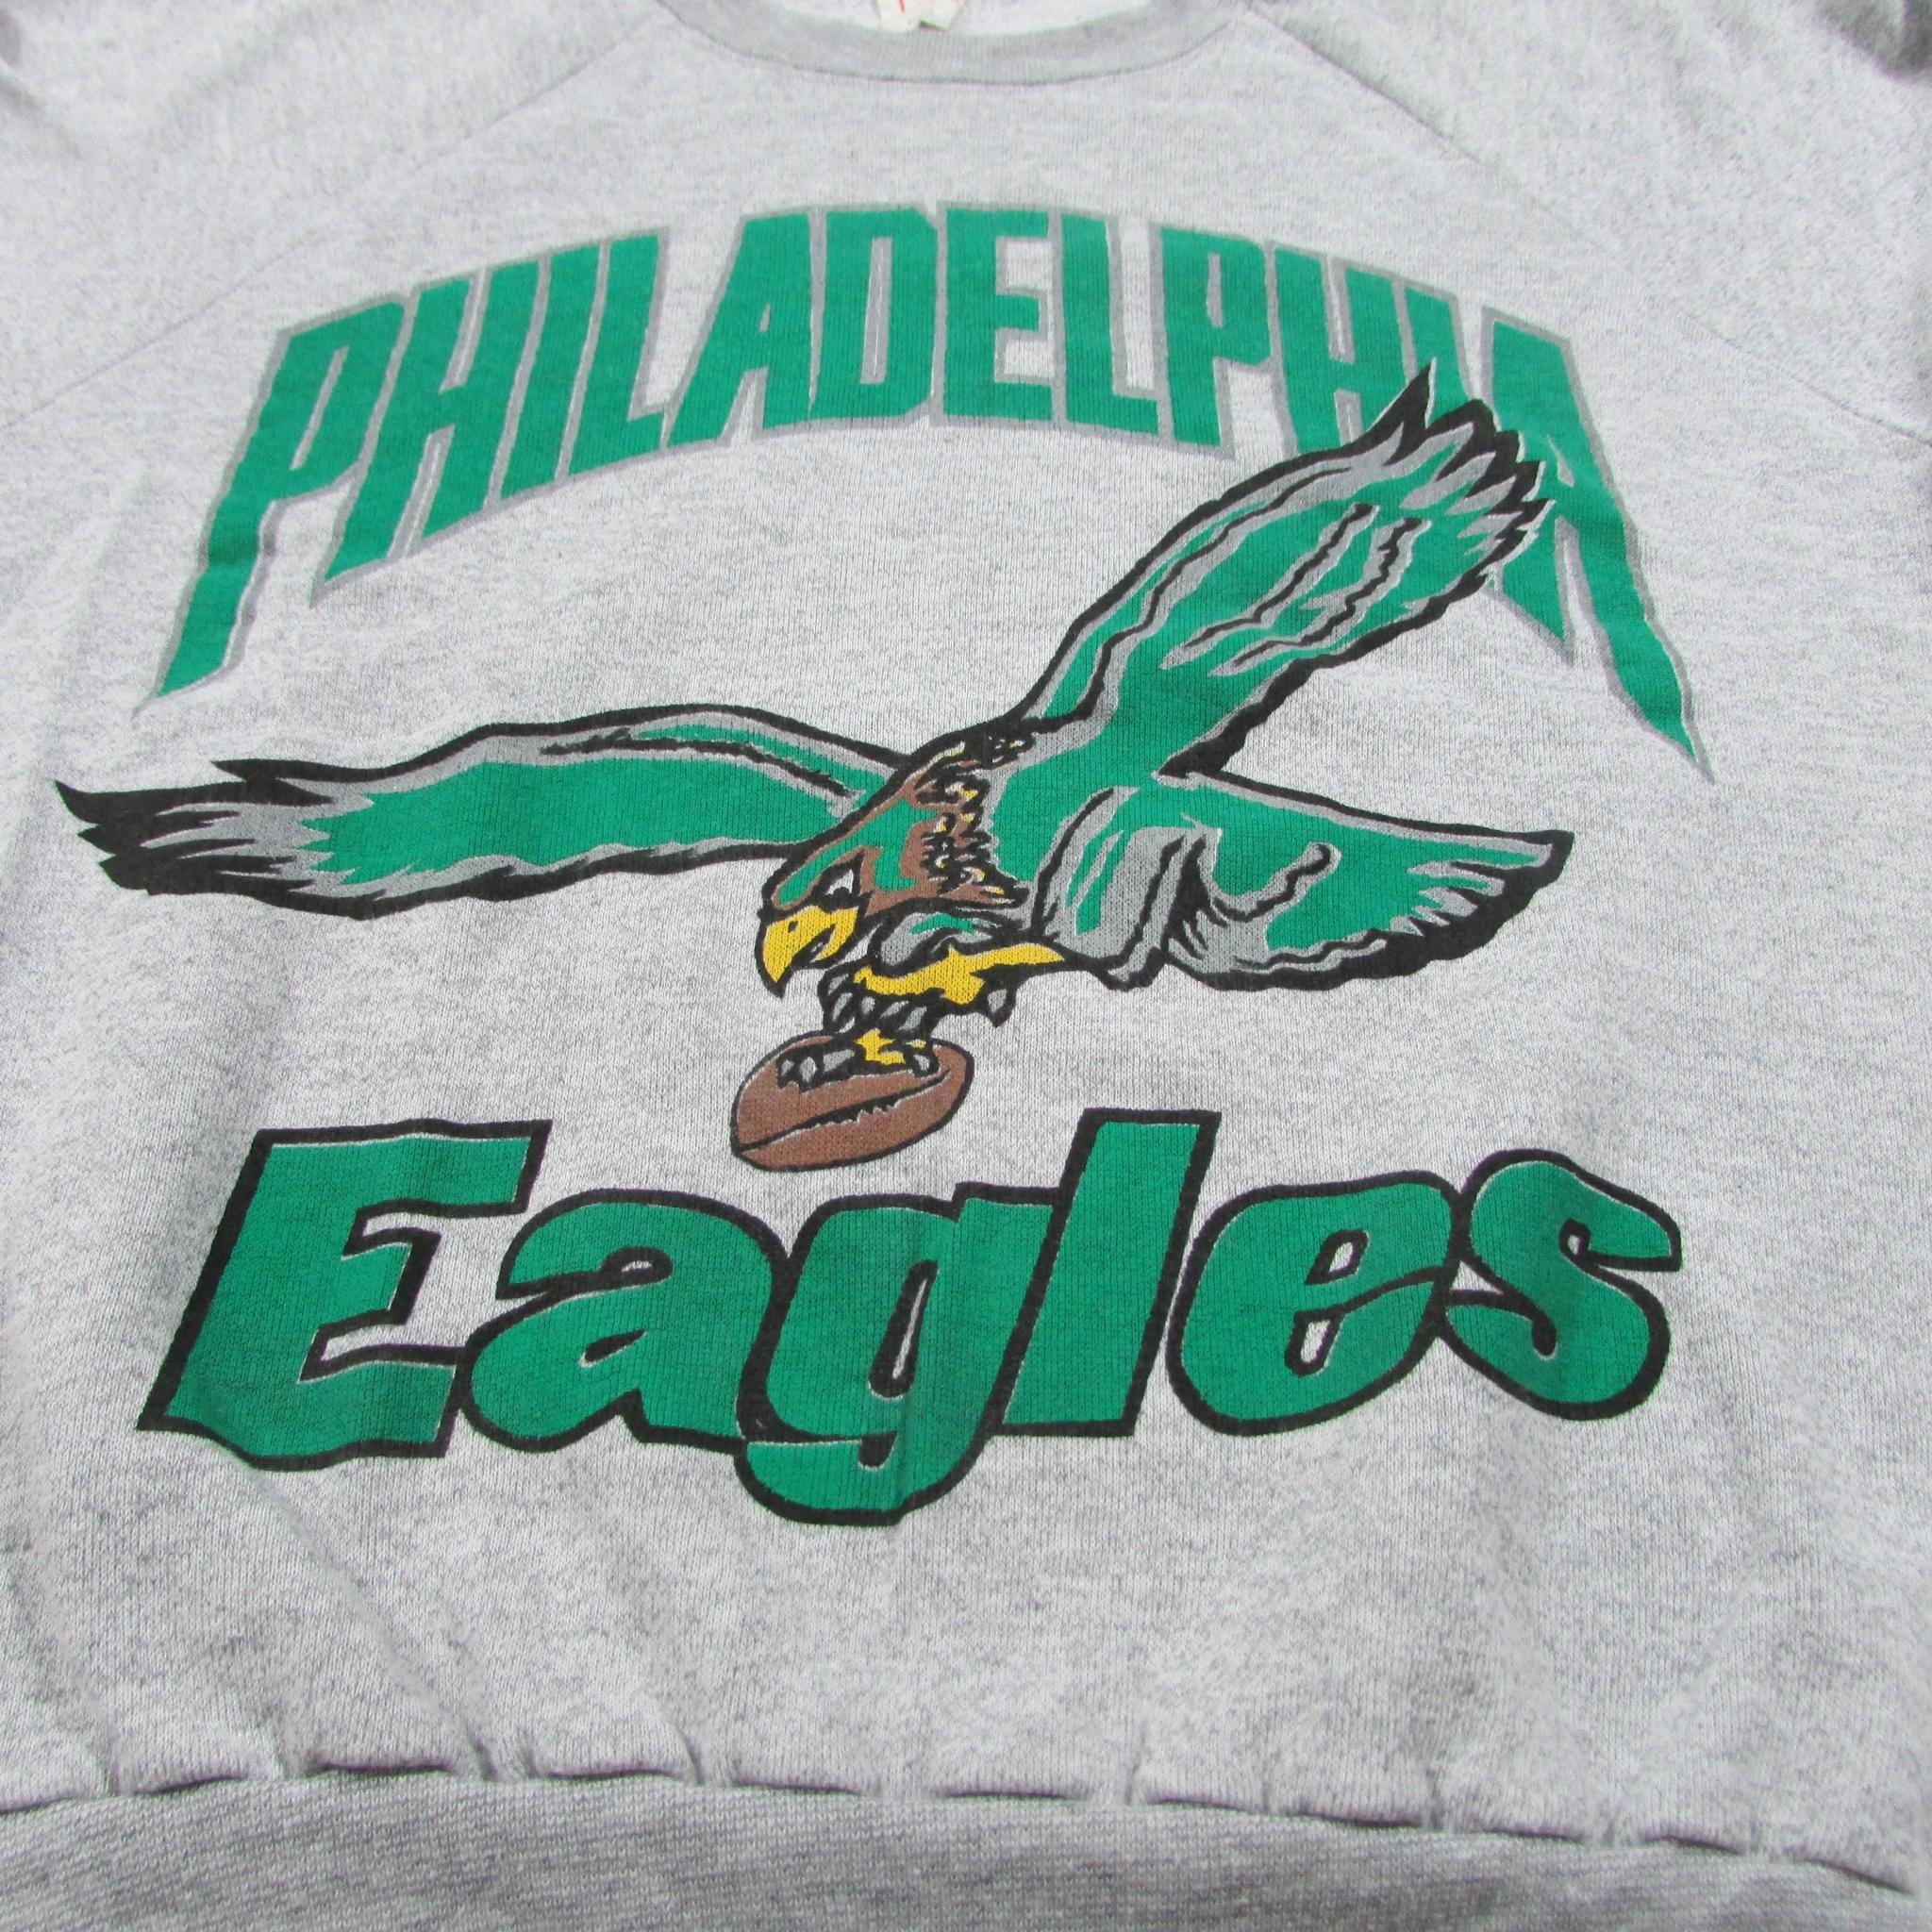 Philadelphia Eagles Lightweight Vintage Football Crewneck Sweater Sz L